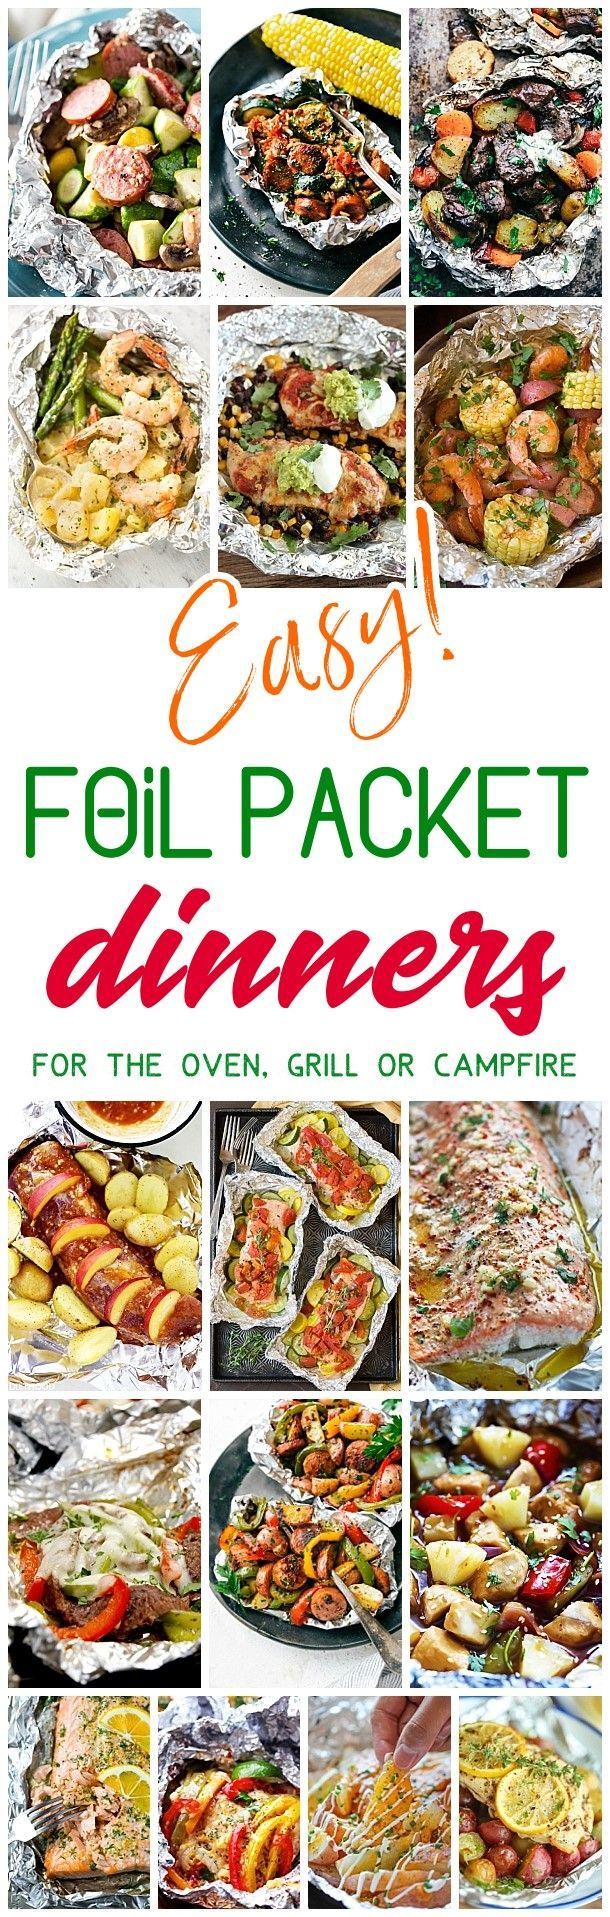 Easy Tin Foil Packets Dinners Recipes - Easy meal prep and easy, quick clean up! So many delicious chicken, beef, salmon, pork, shrimp and chicken tin foil packet dinners you and your family can enjoy making in the oven all year long, throwing on the backyard grill or tossing in the campfire coals this summer! Dreaming in DIY  #tinfoilsuppers #tinfoildinners #foilpacketmeals #foilpackrecipes #mealprep